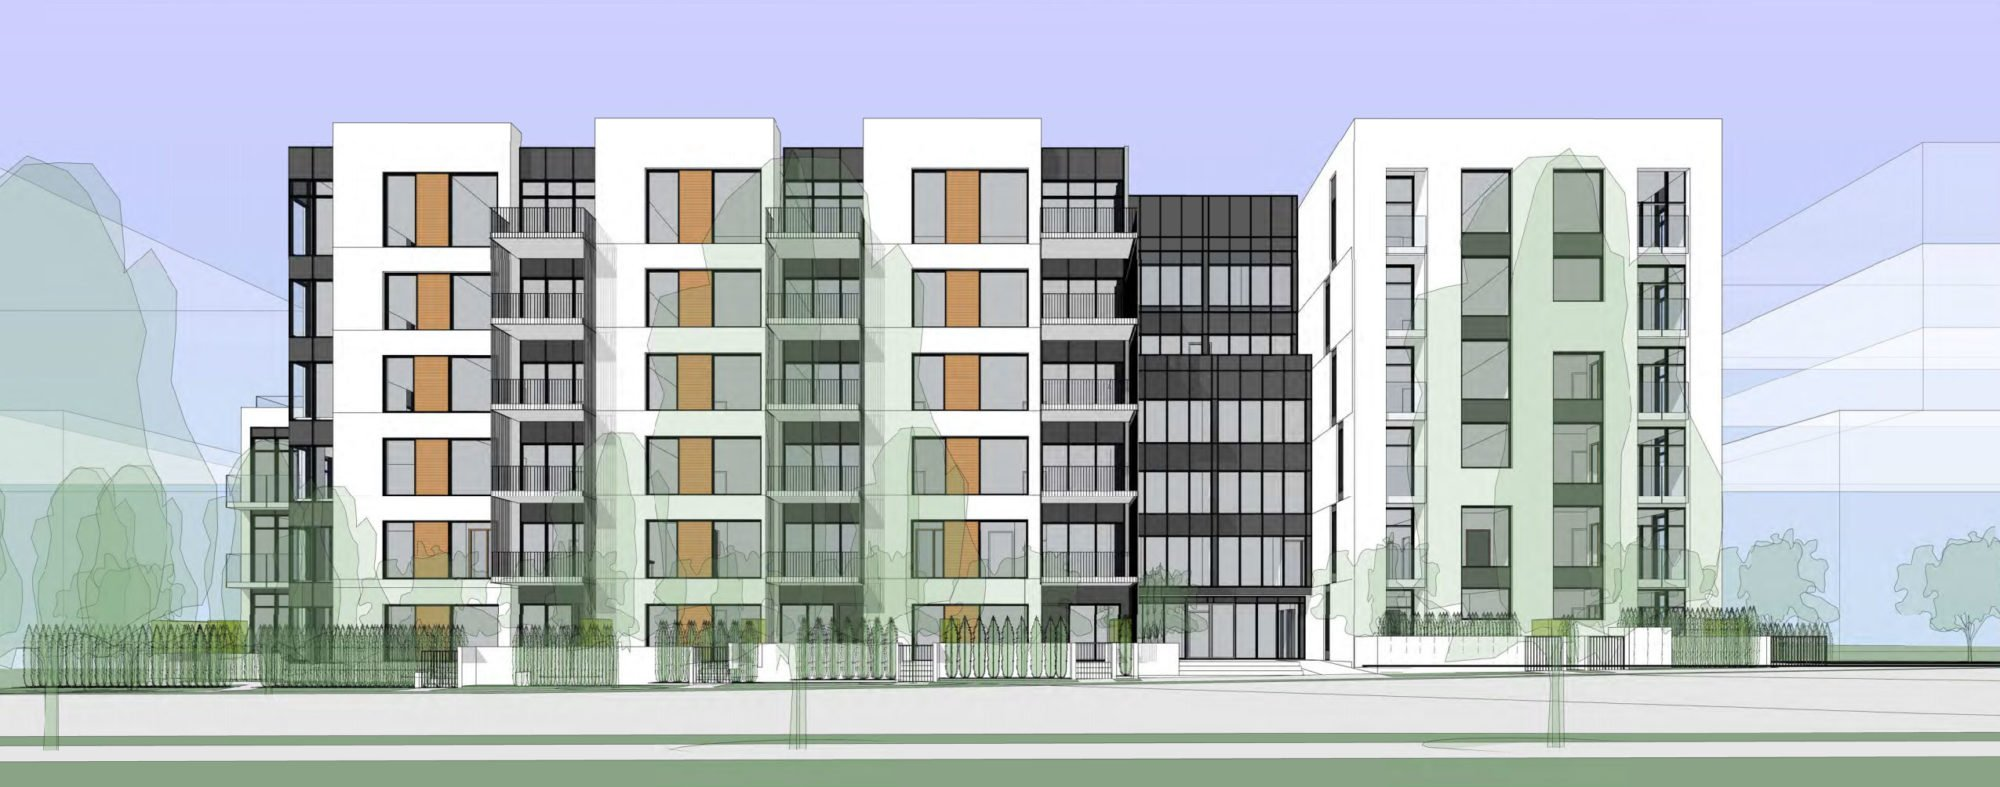 Land assembly on East Broadway slated for 87-unit condo building